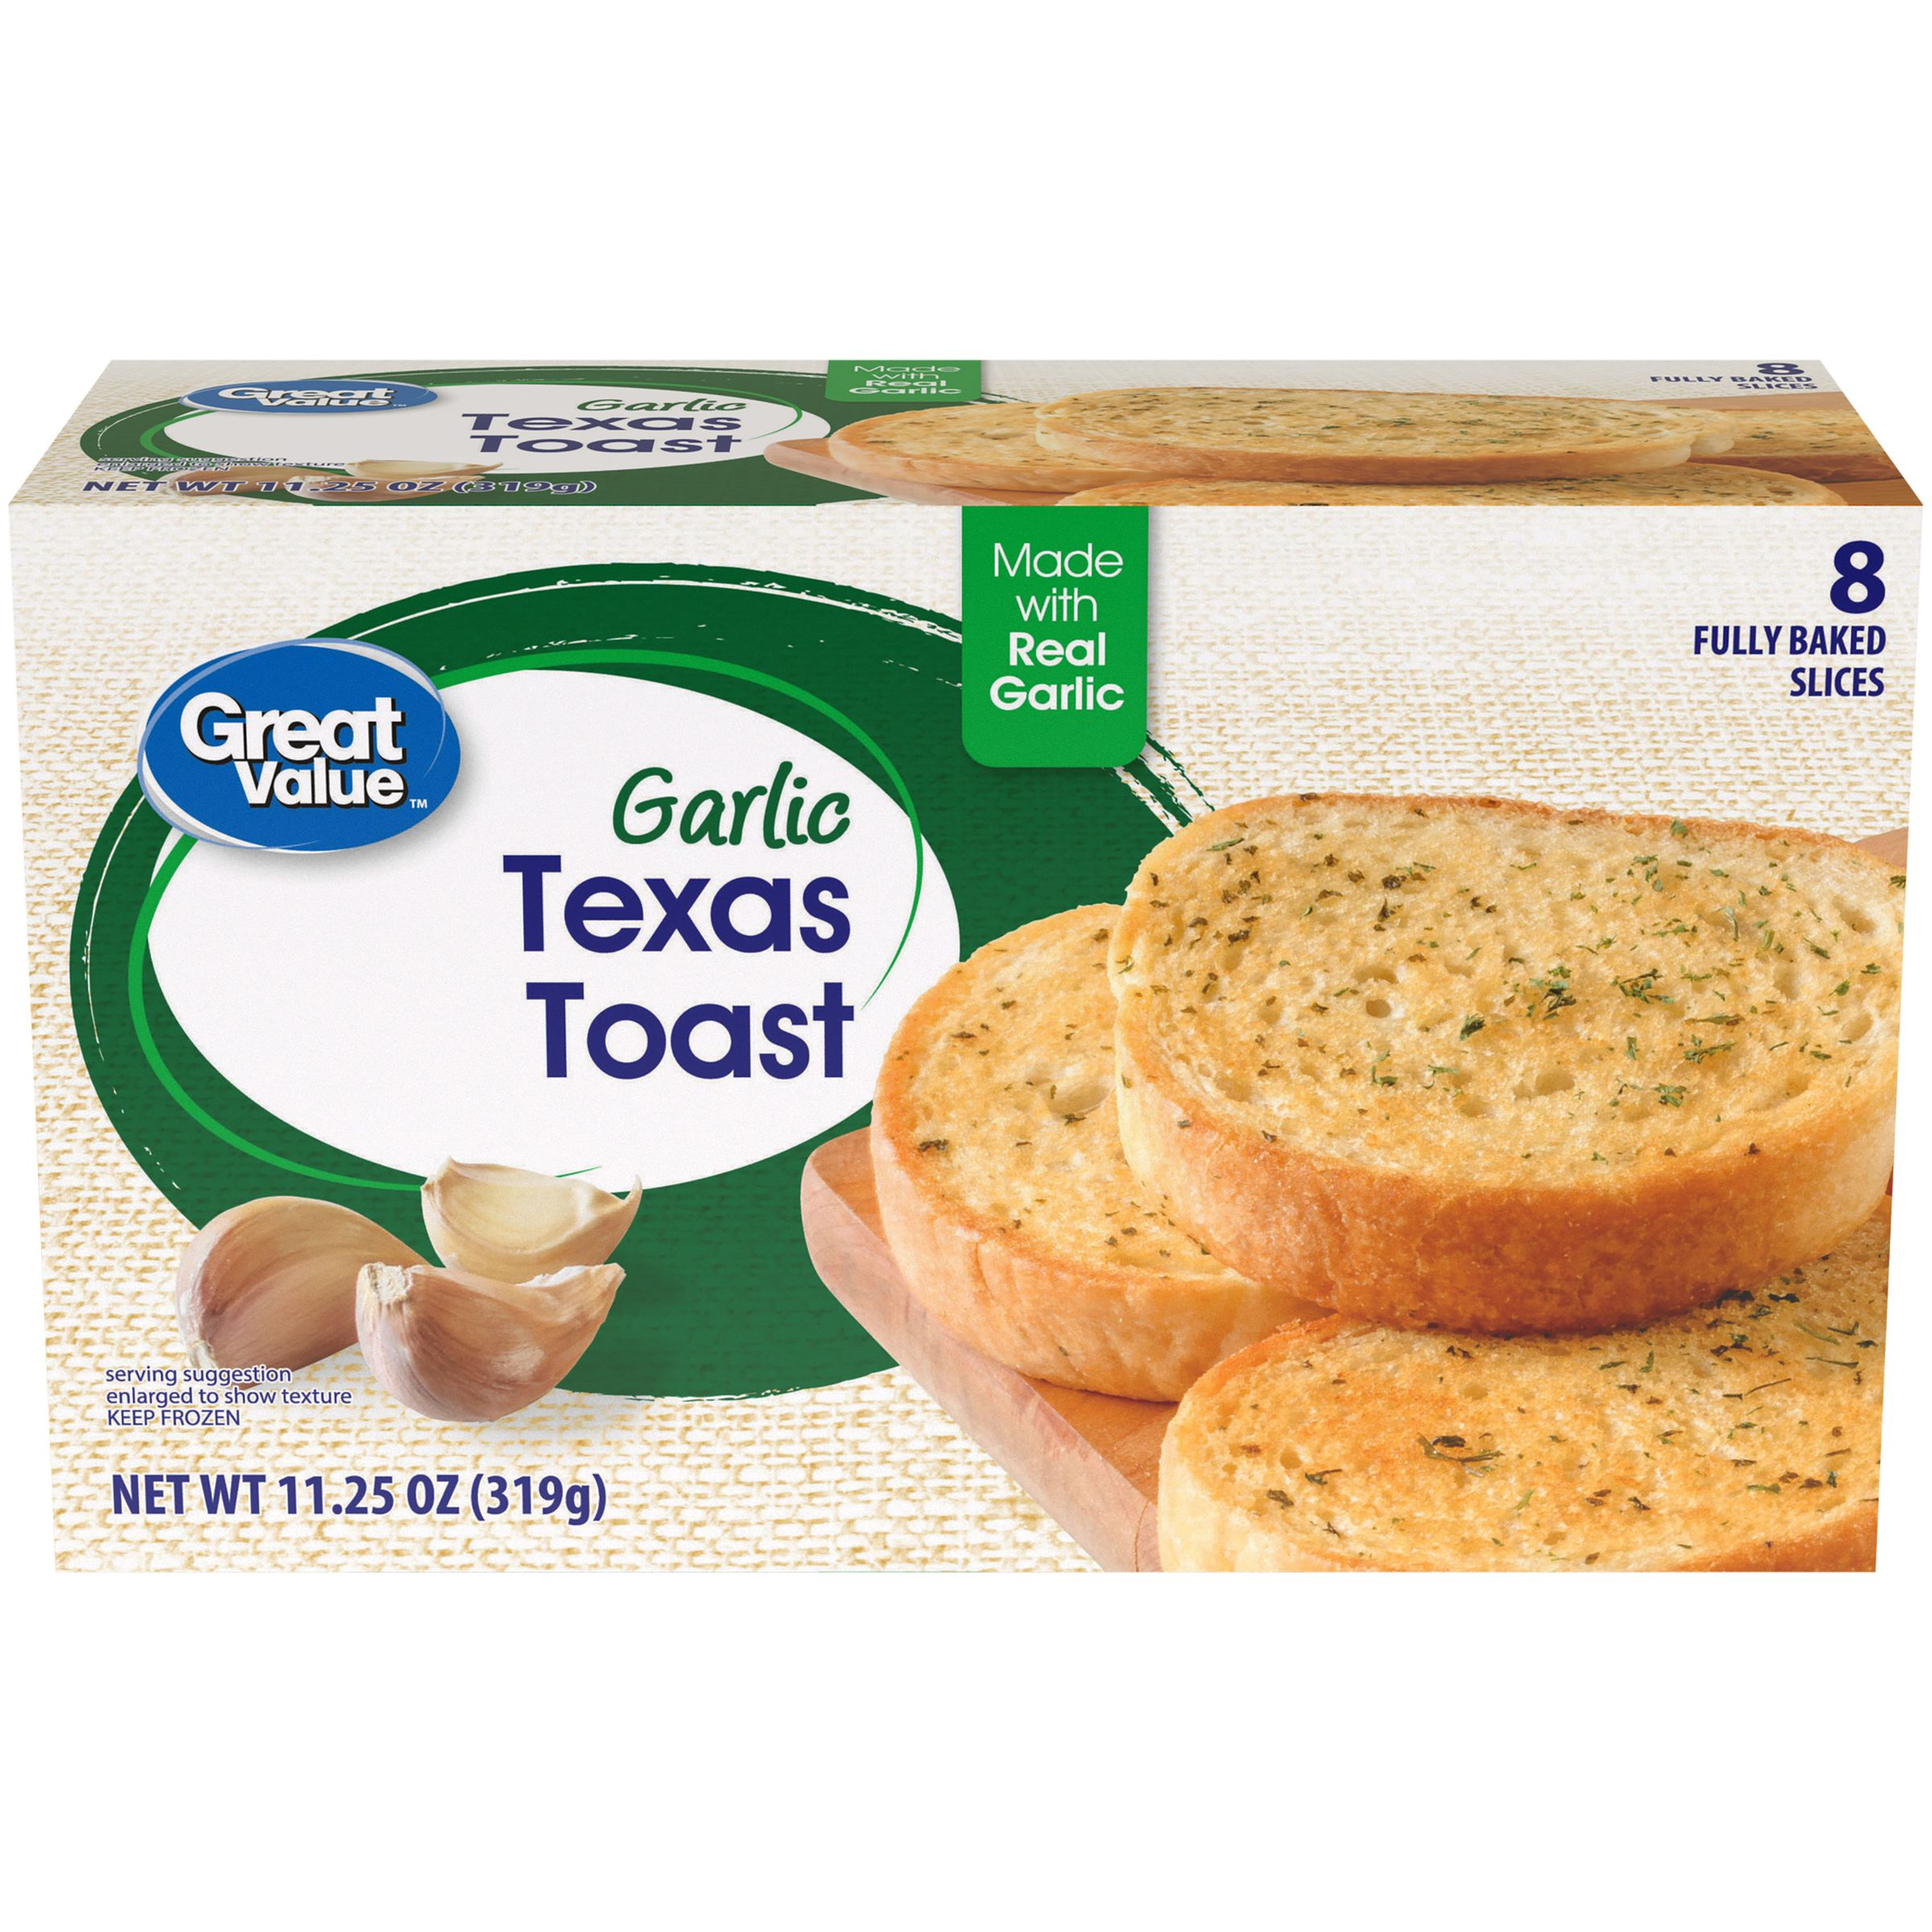 Great Value Garlic Texas Toast, 11.25 oz, 8 Count